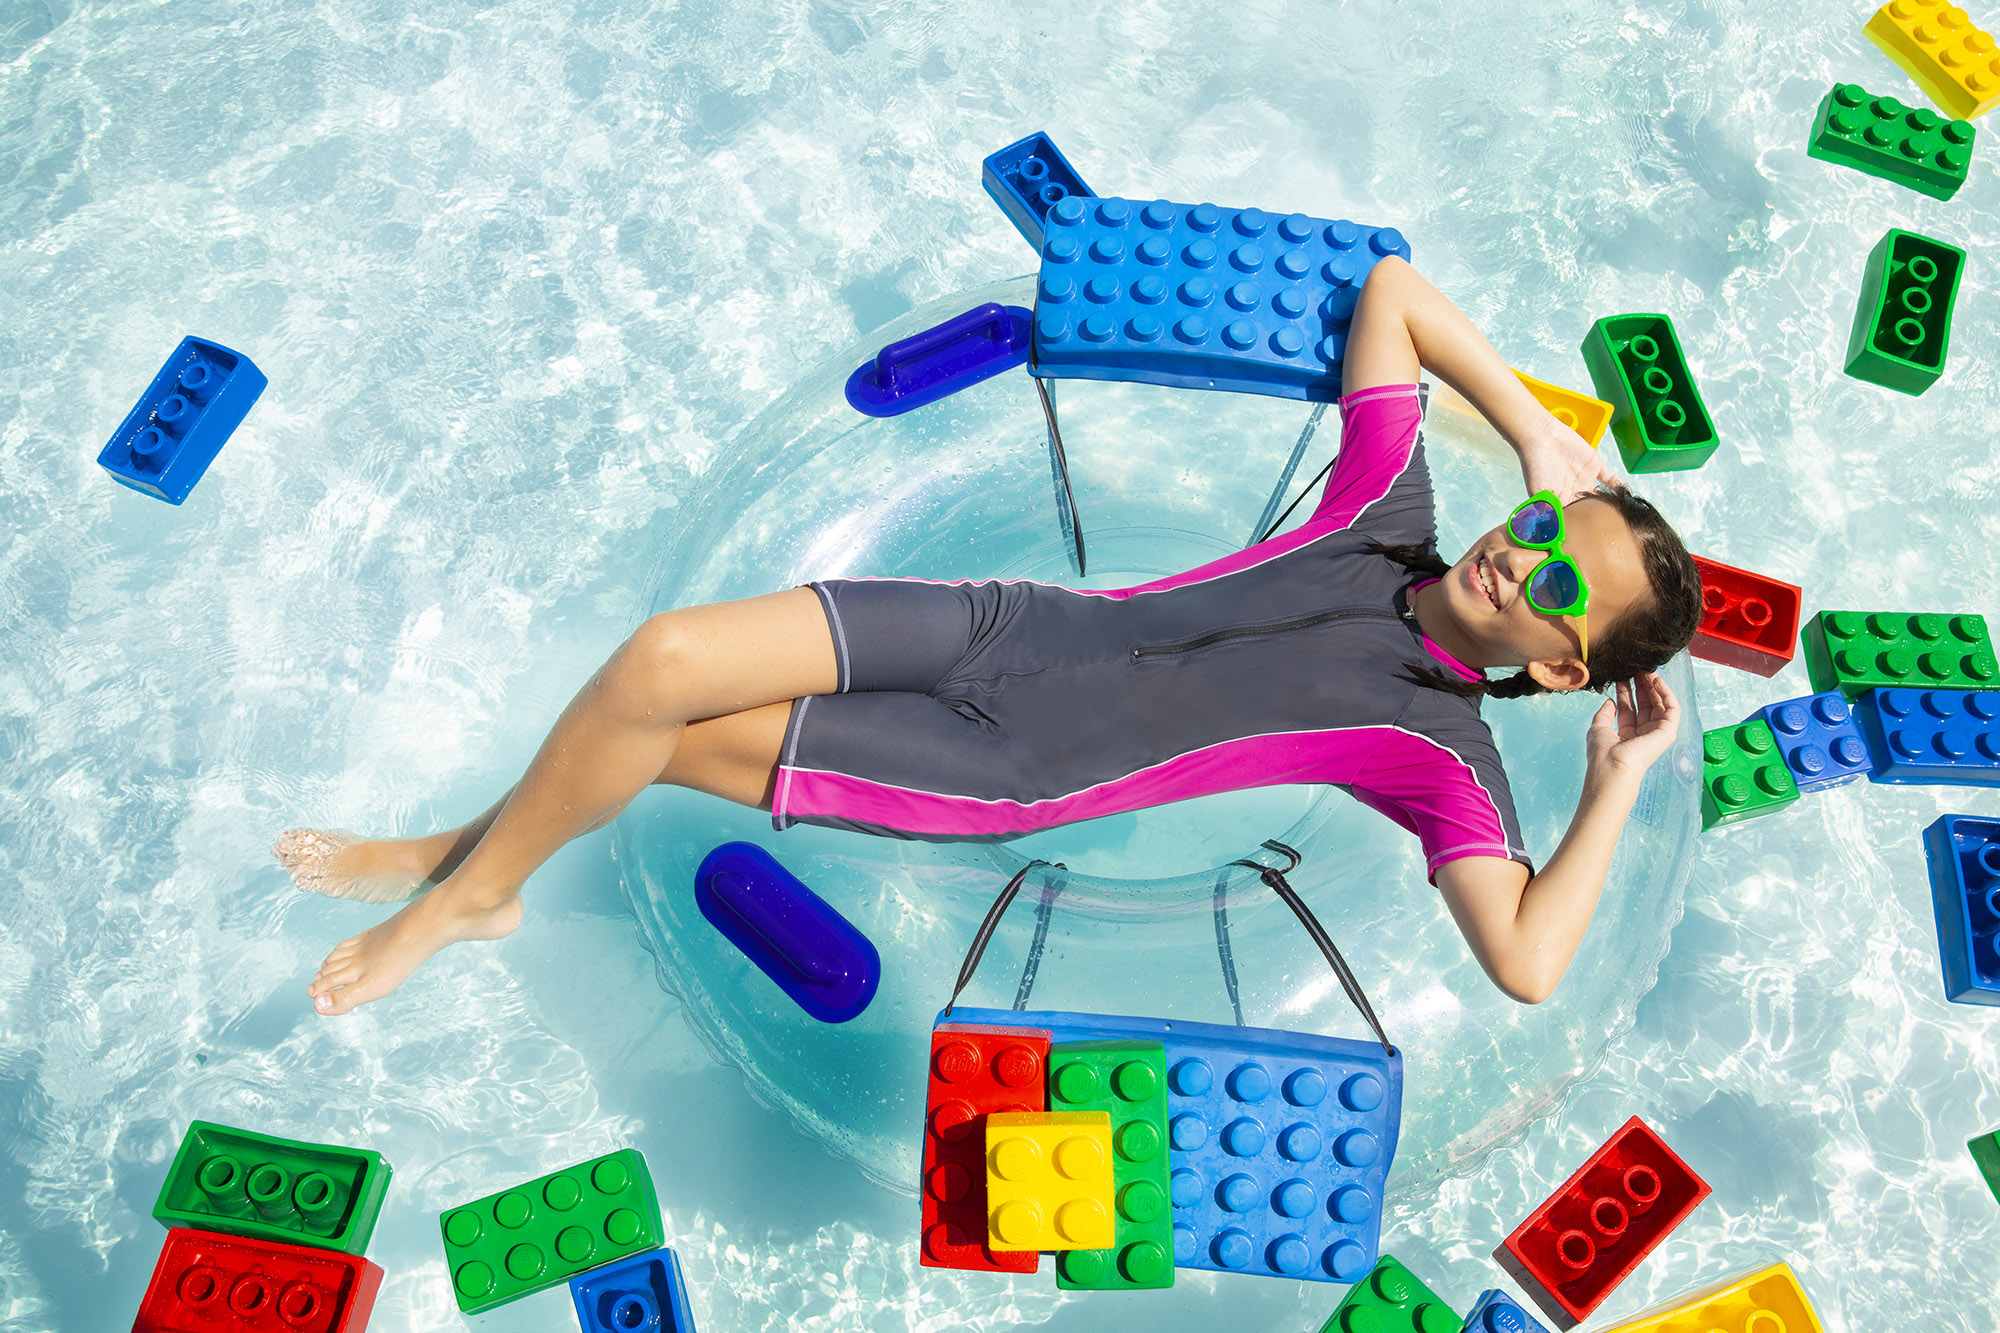 What Is Happening At Legoland Malaysia In 2019? - Malaysia ...